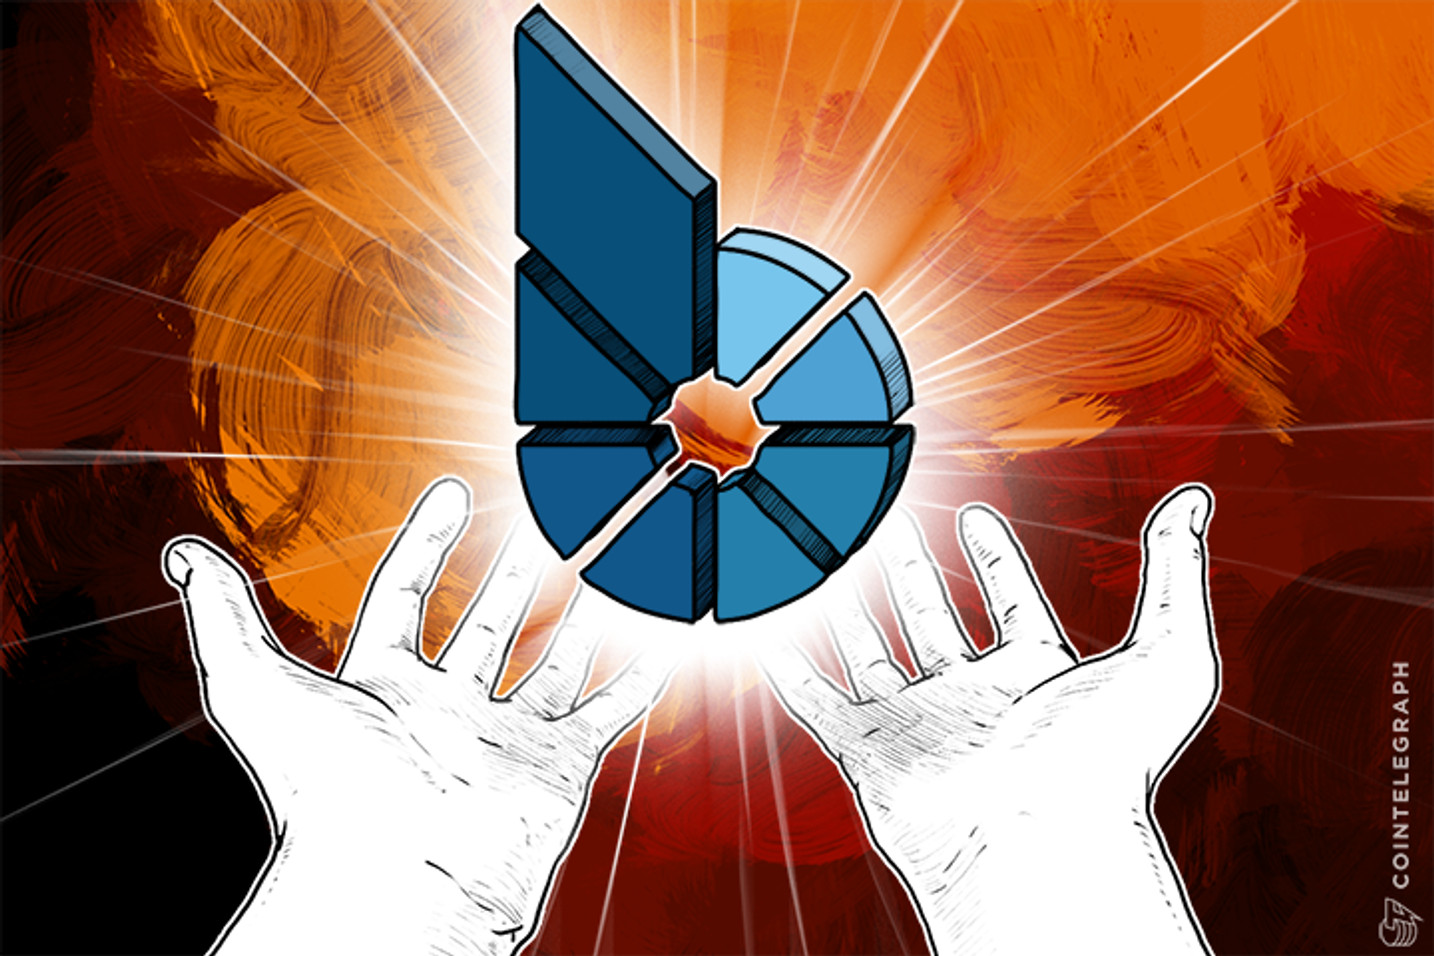 BitShares 101: Basics of the World's 4th Most Popular Cryptocurrency